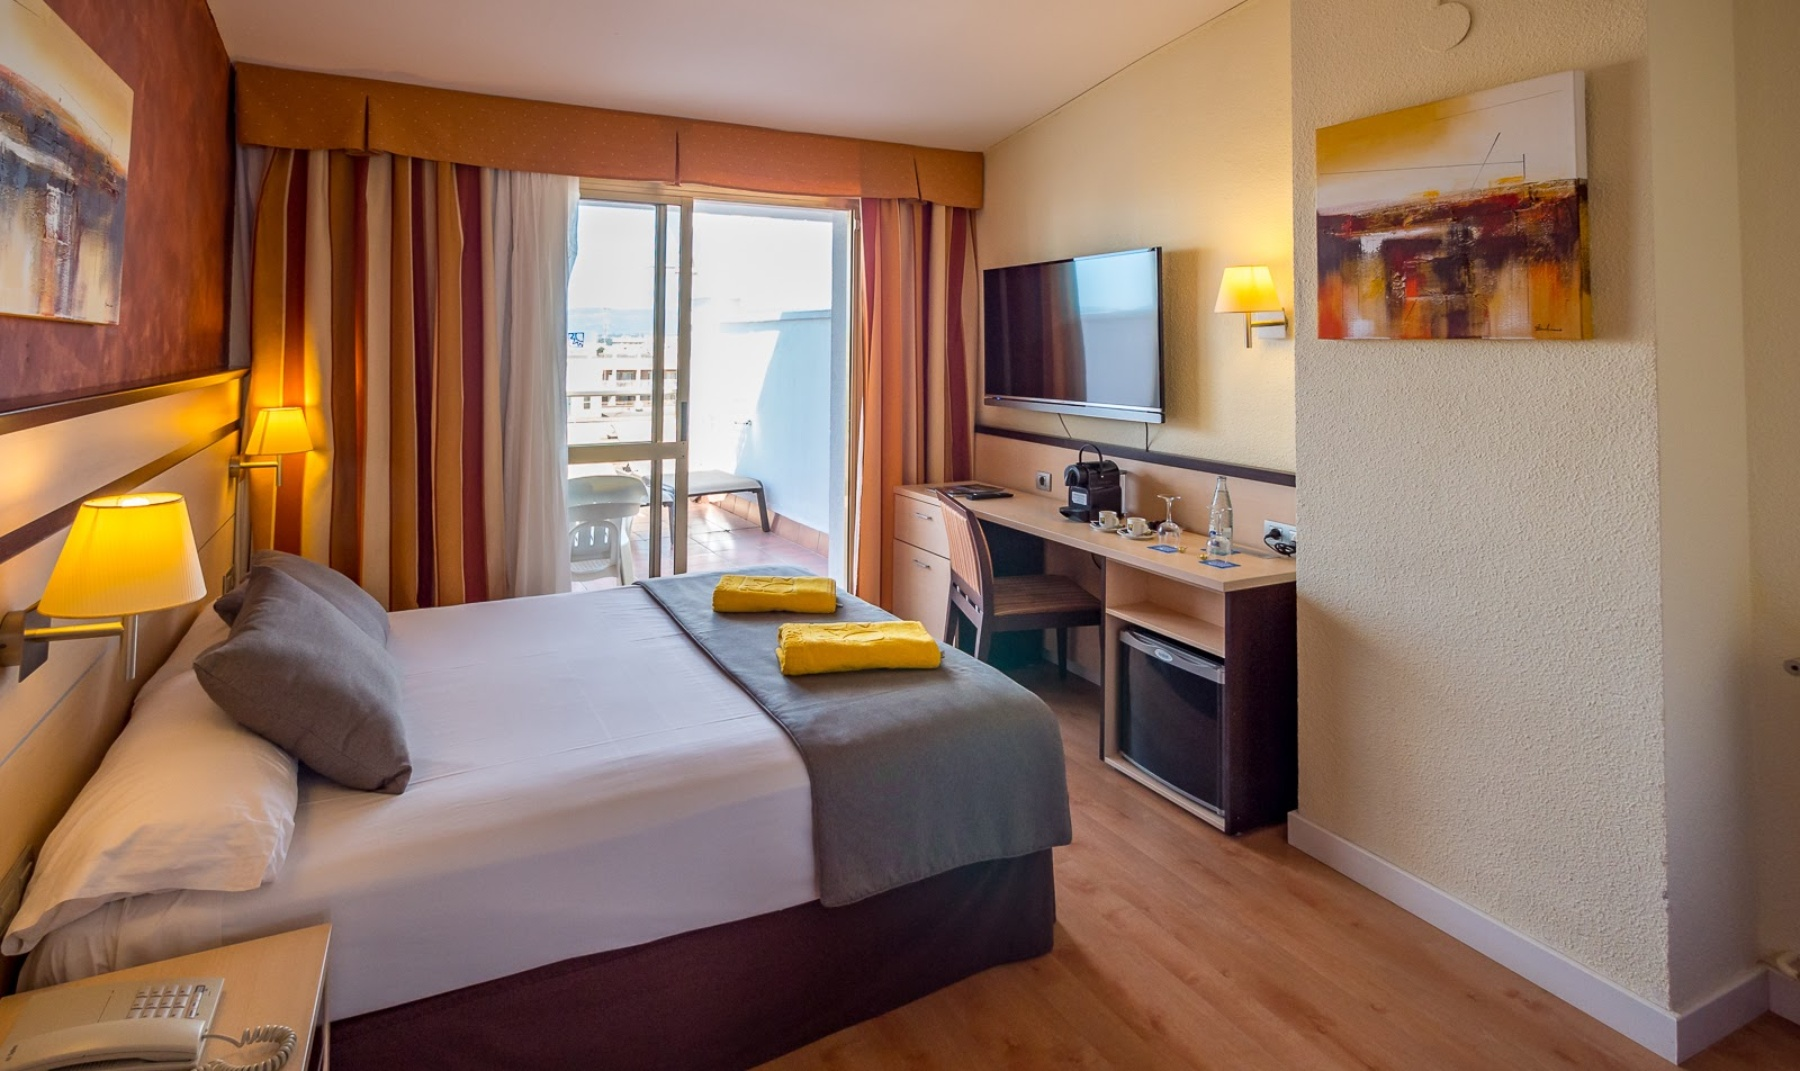 Hotels in Salou for children all inclusive family rooms Salou